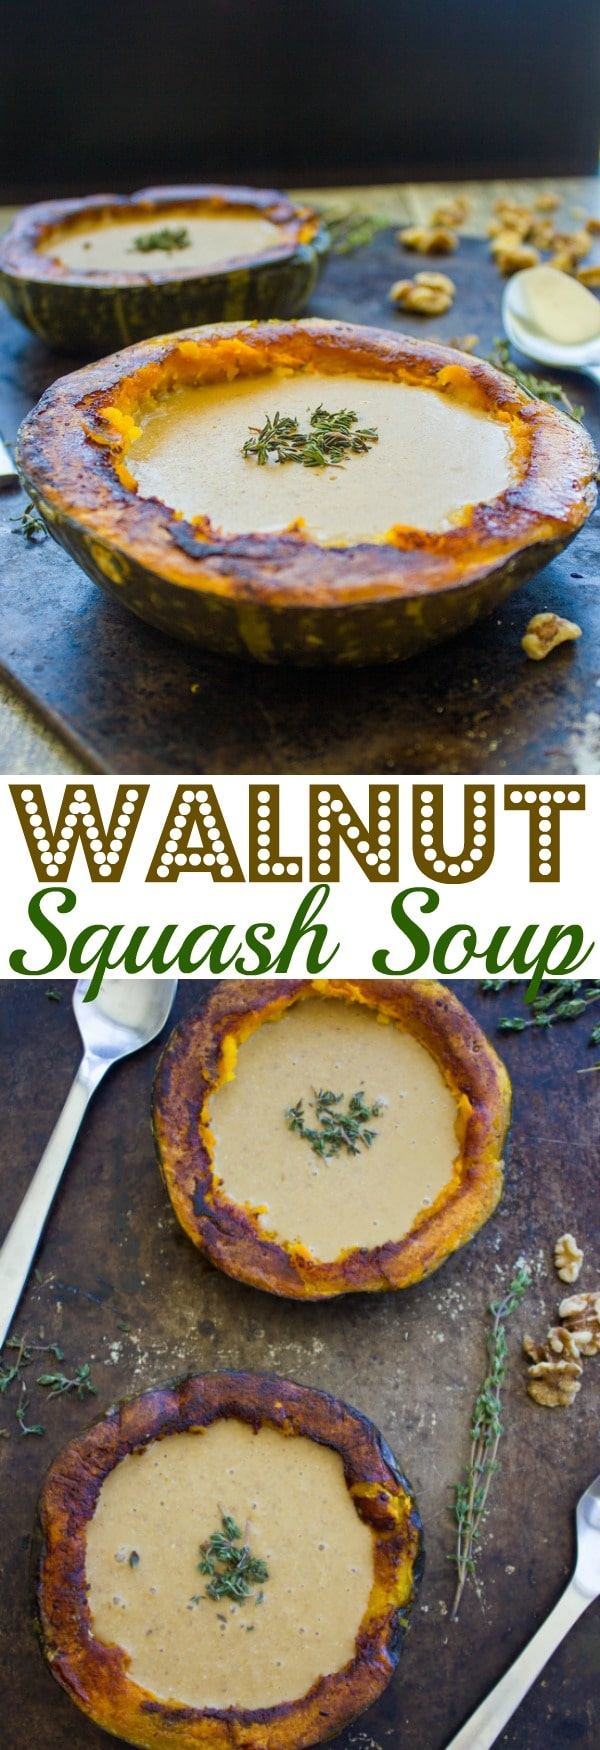 Sweet kabocha squash paired with walnuts and pureed till velvety smooth! This Walnut and Squash Soup is the perfect warming comfort food! Serving this vegan squash soup in roasted squash cups takes this fall soup to the next level. #squashsoup, #fallrecipes, #halloweenrecipes, #thanksgiving